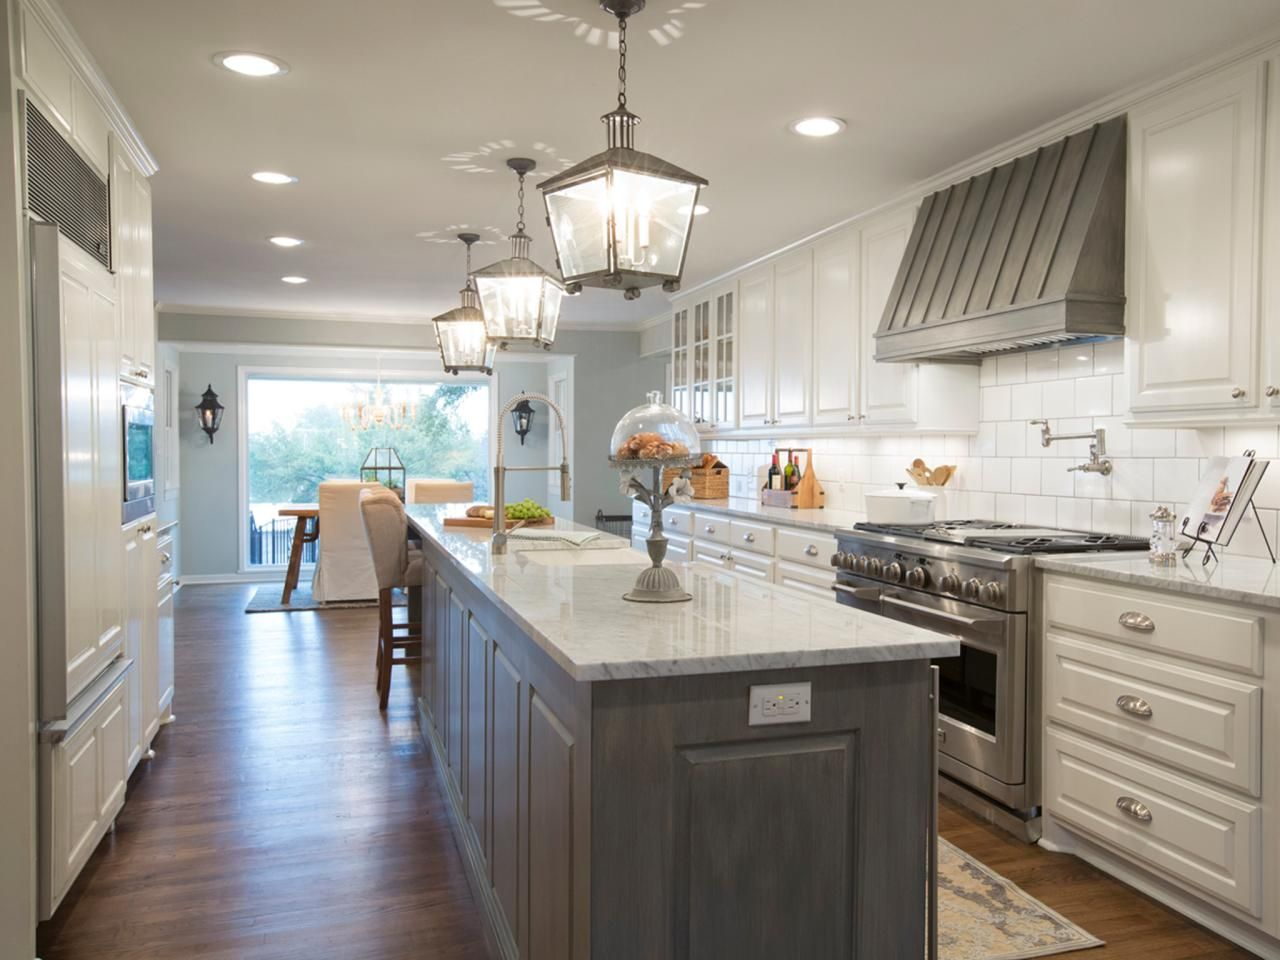 Interior design kitchens to show that white is the greatest kitchen - Interior Design Kitchens To Show That White Is The Greatest Kitchen Chip And Joanna Gaines Download